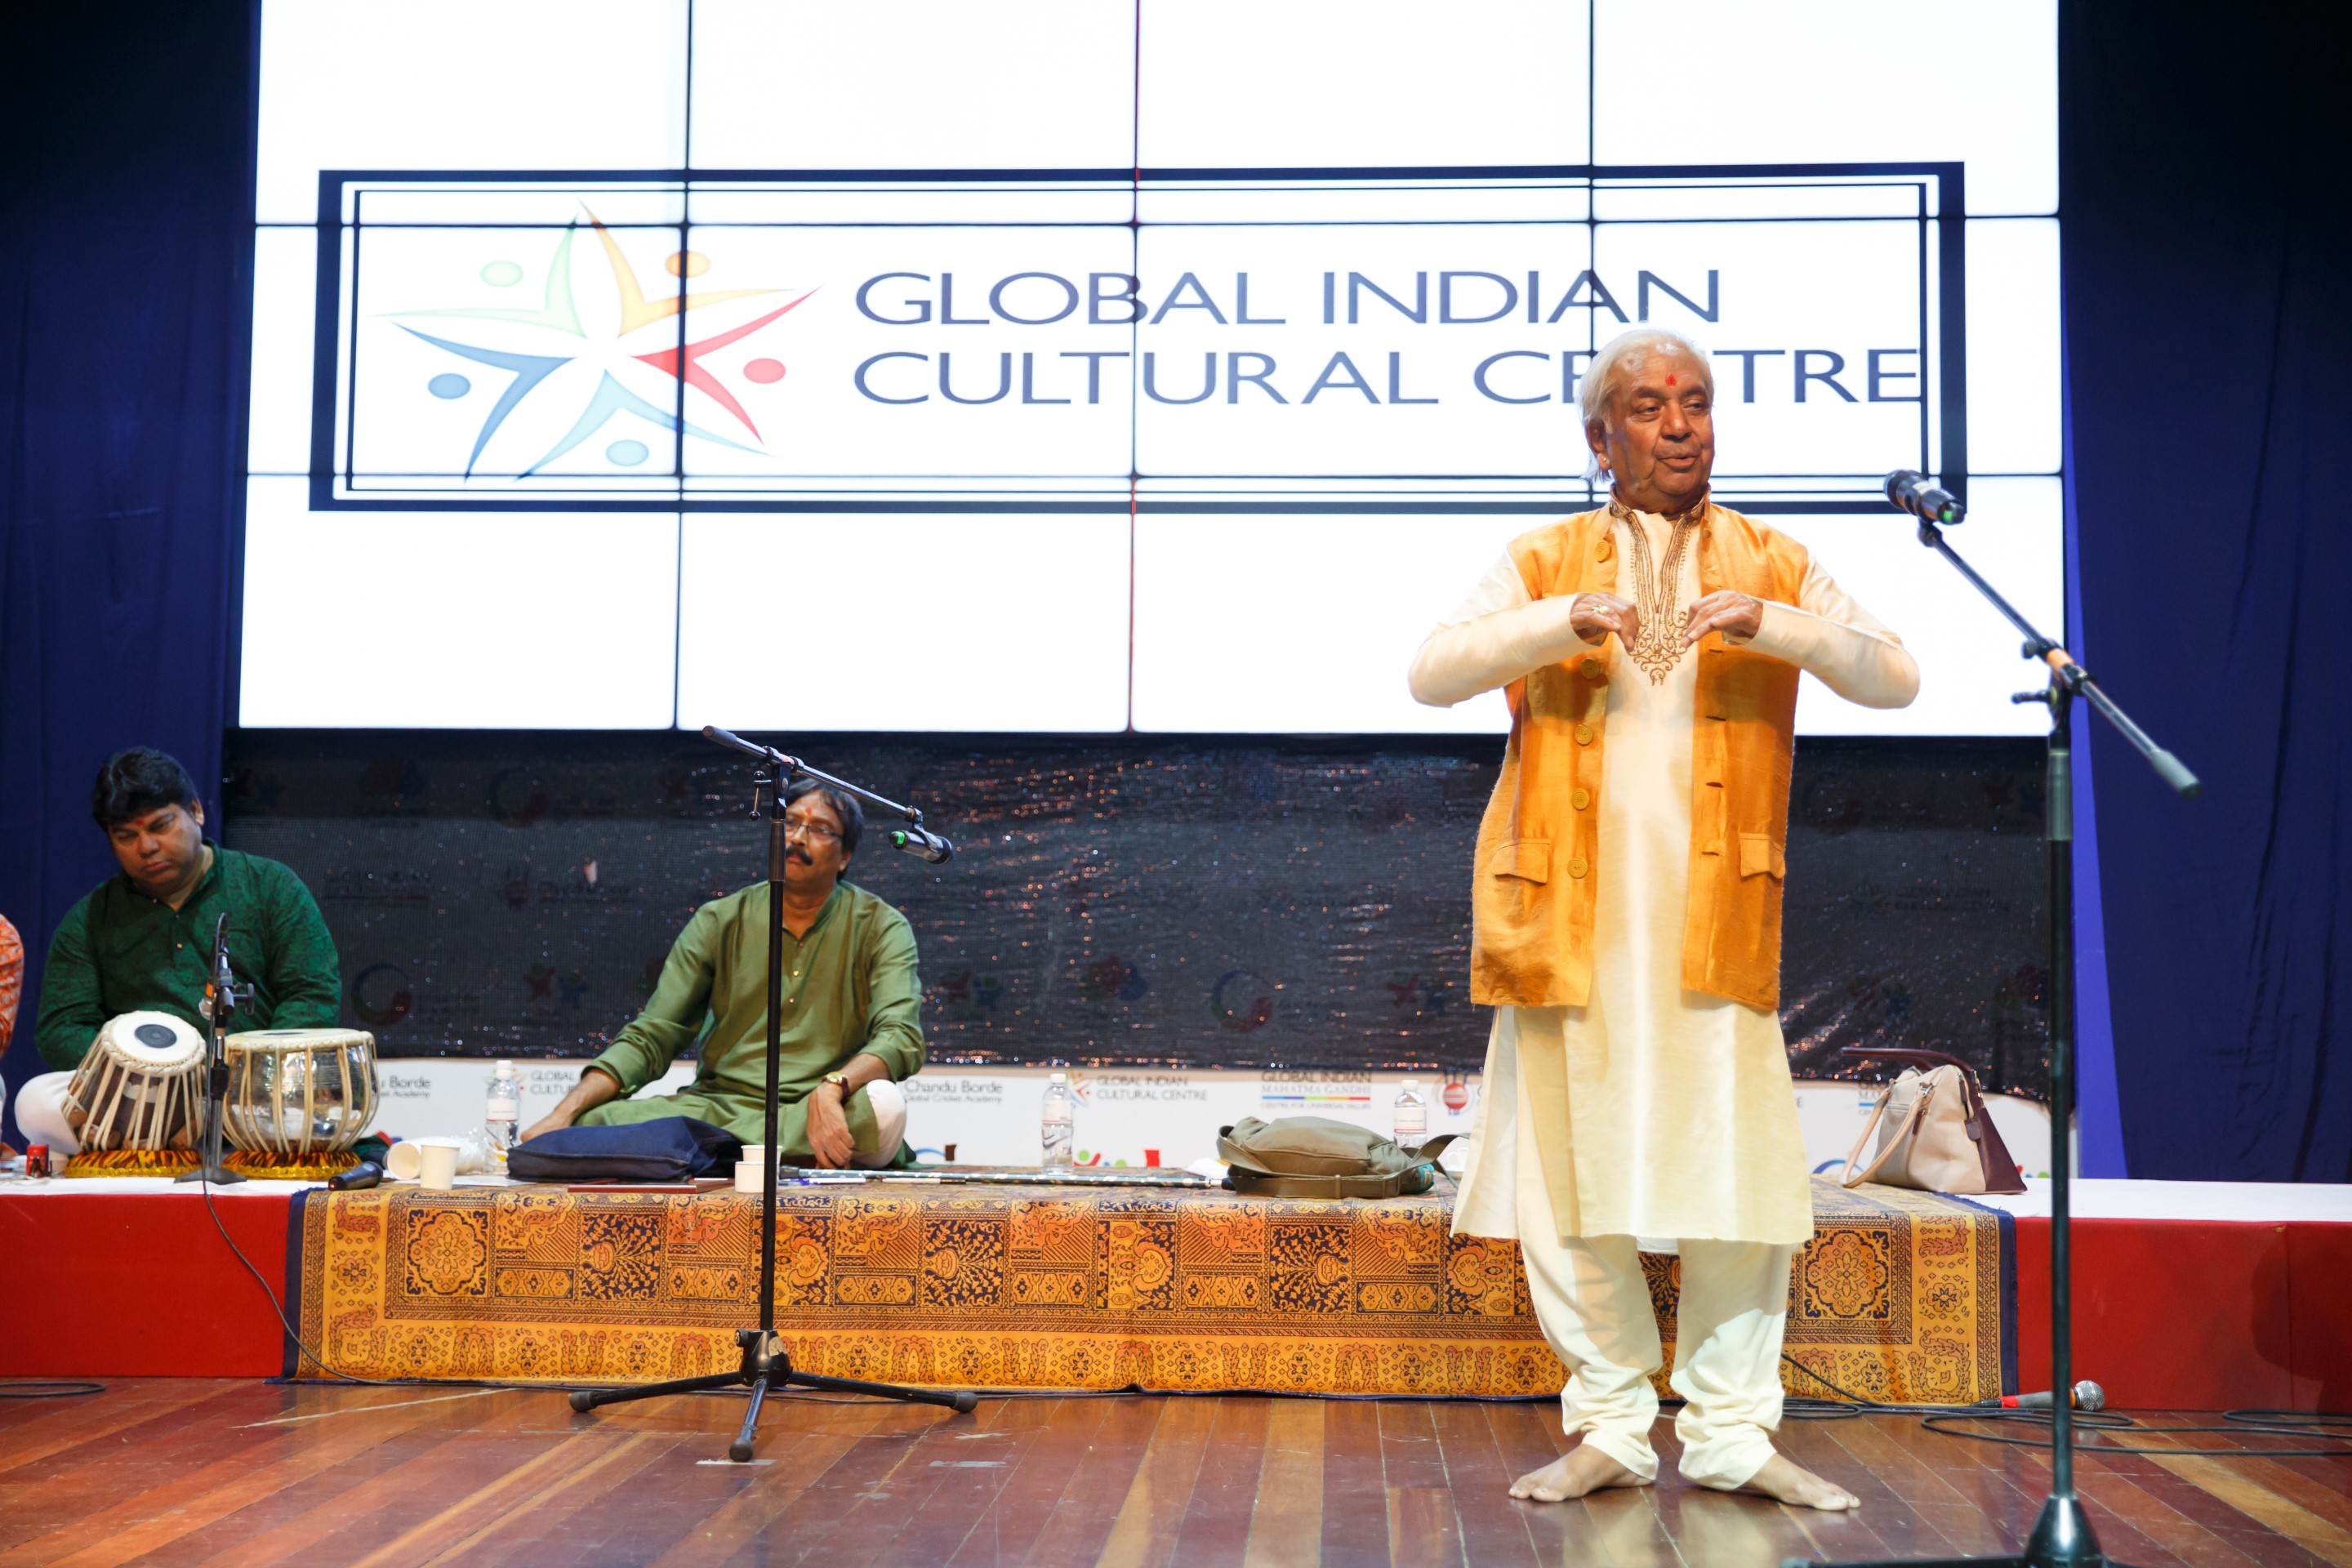 Pandit Birju Maharaj addressing students during the workshop.